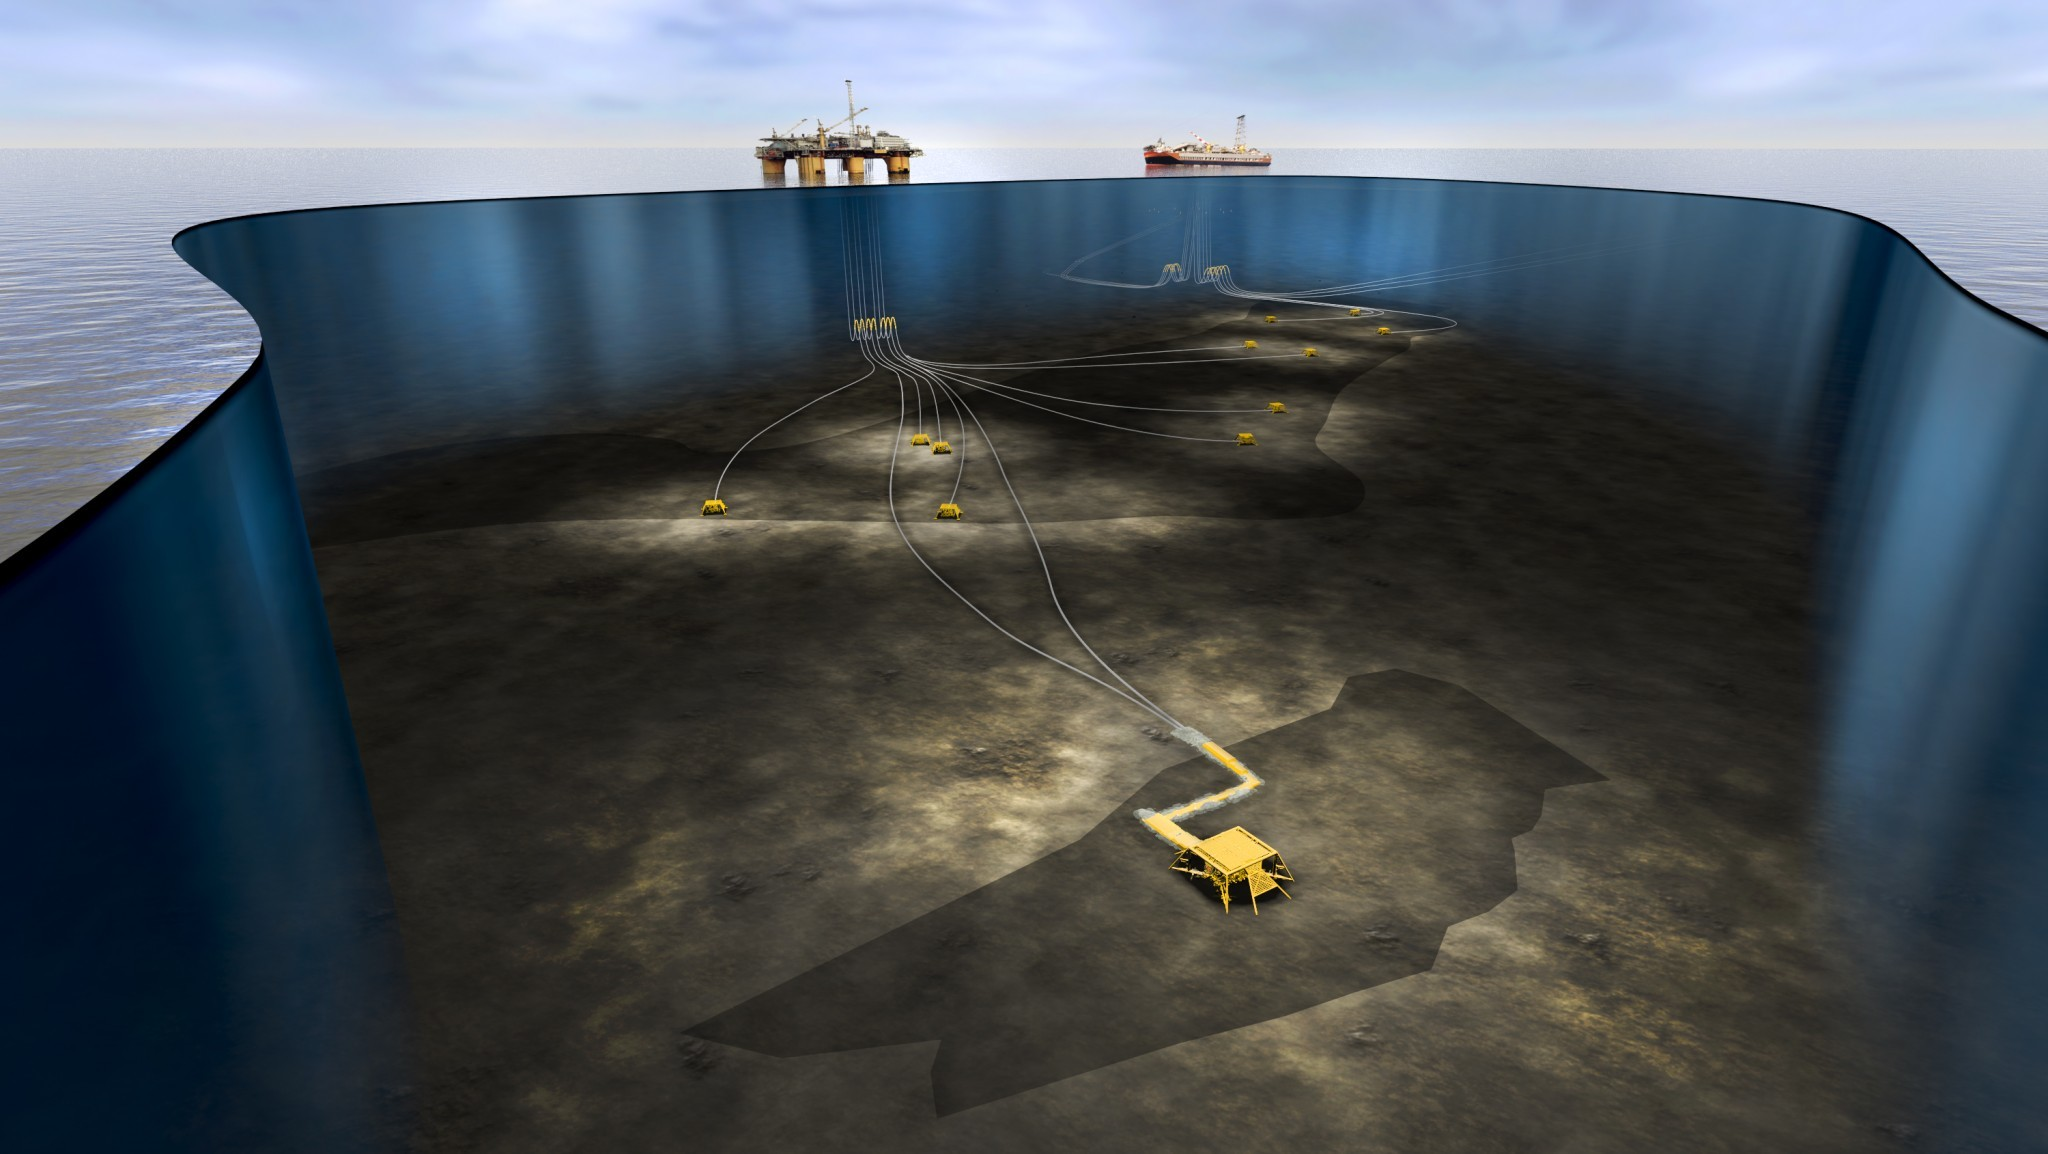 The Fogelberg discovery in the Norwegian Sea is shaping up to be Spirit Energy's next operated development.